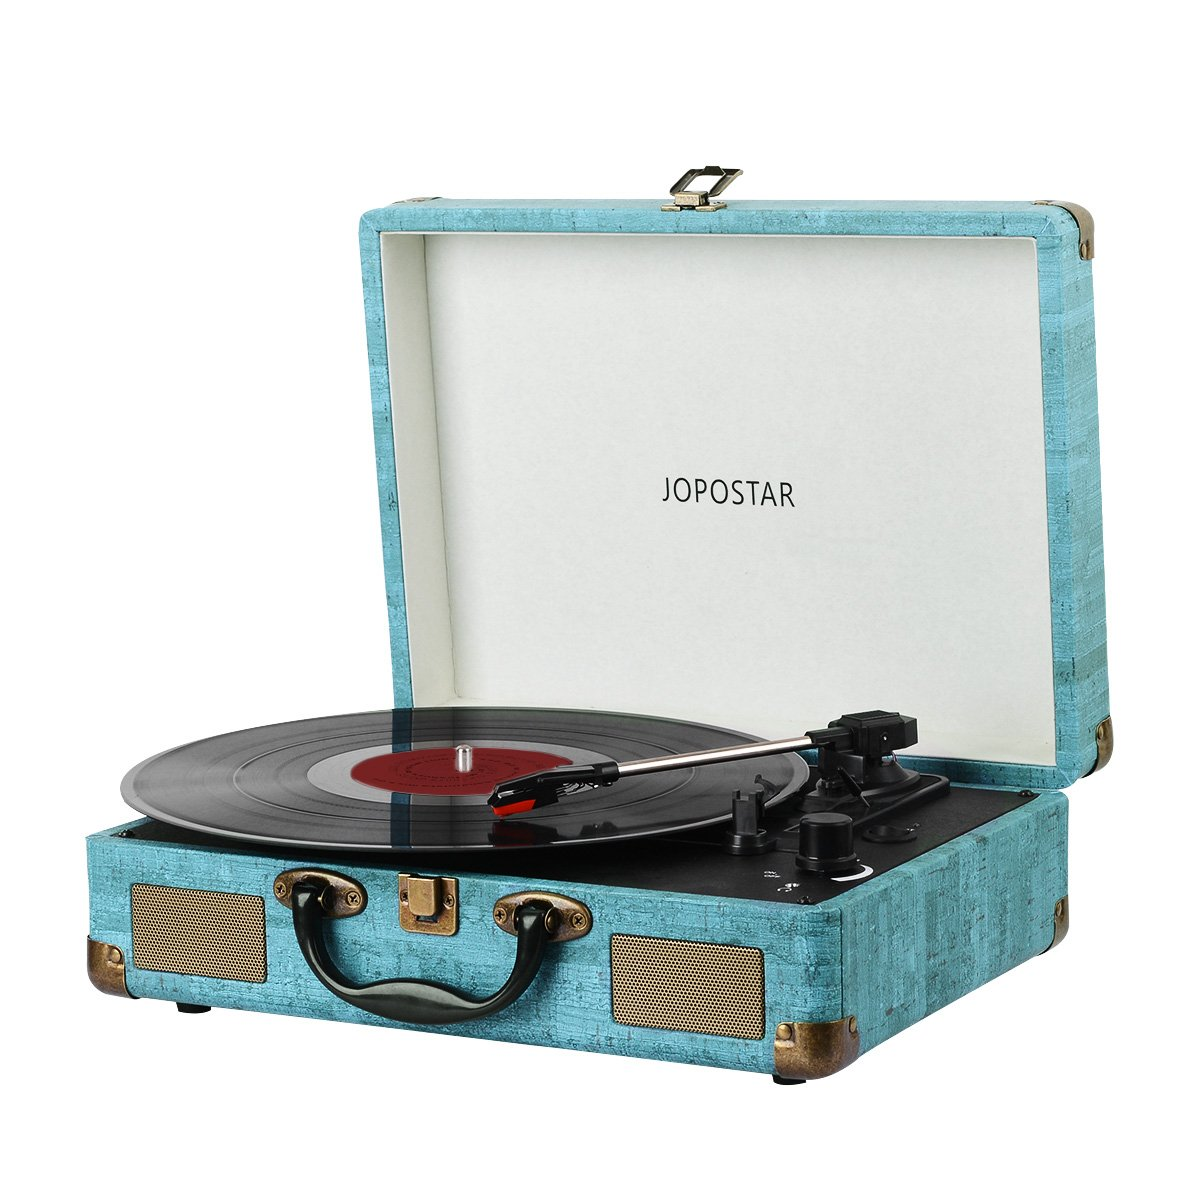 Bluetooth Record Player ,JOPOSTAR Suitcase Portable 3-Speed Belt-Driven Turntable Player Built-in Speakers , Headphone Jack , Aux Input by JOPOSTAR